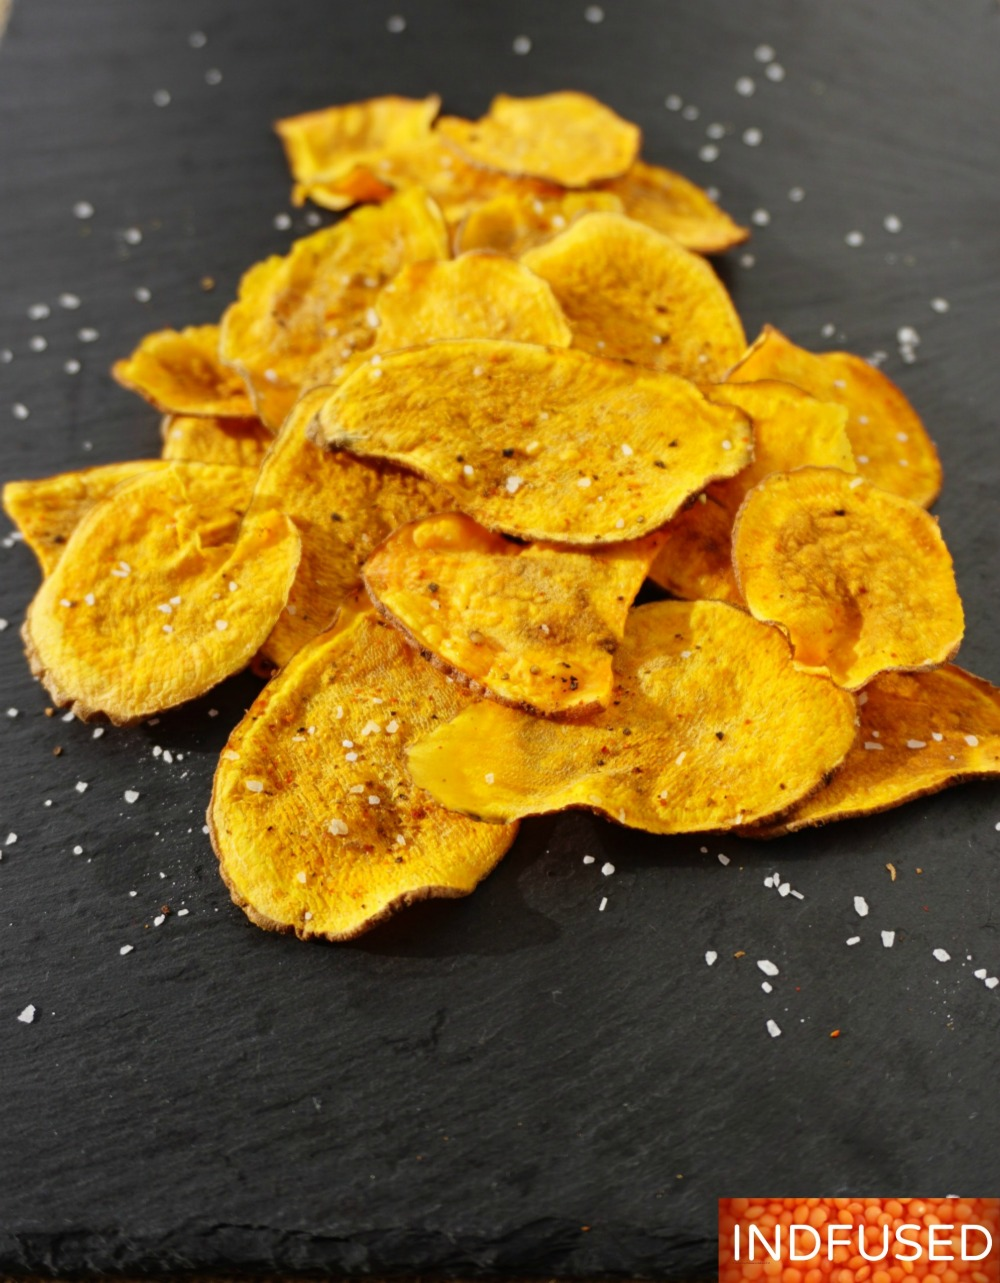 #sweet potato #chips #baked, #microwave #recipe #quickandeasy #figurefriendly, #kidfriendly #vegetarian, #vegan,#glutenfree #recipe